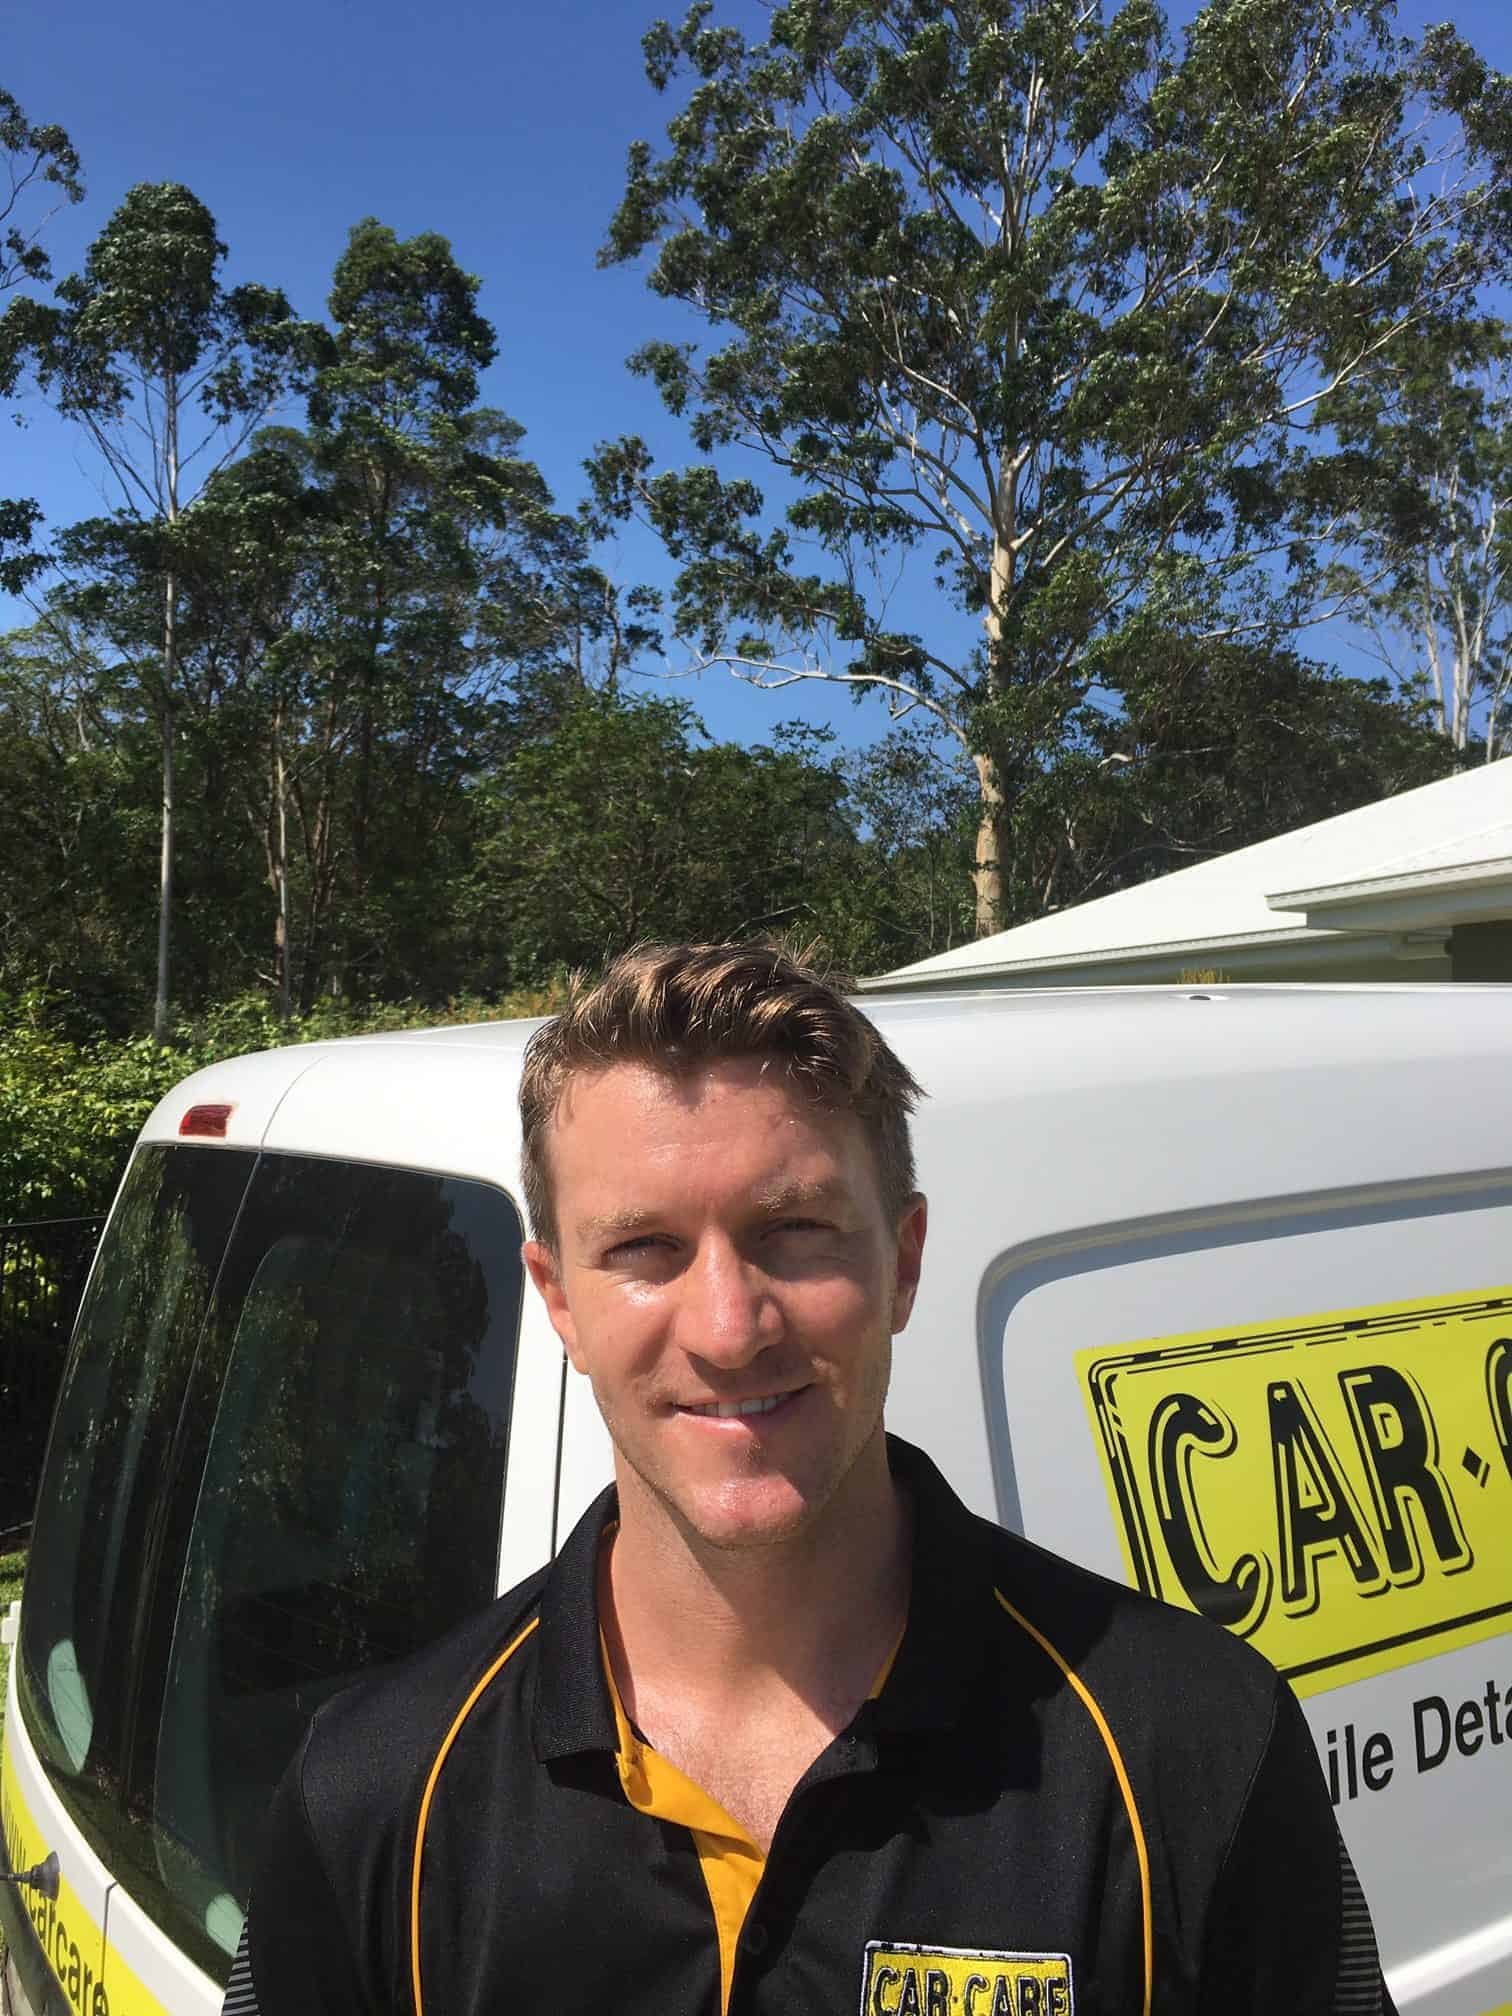 Daniel Burrows Car Care Ipswich rotated